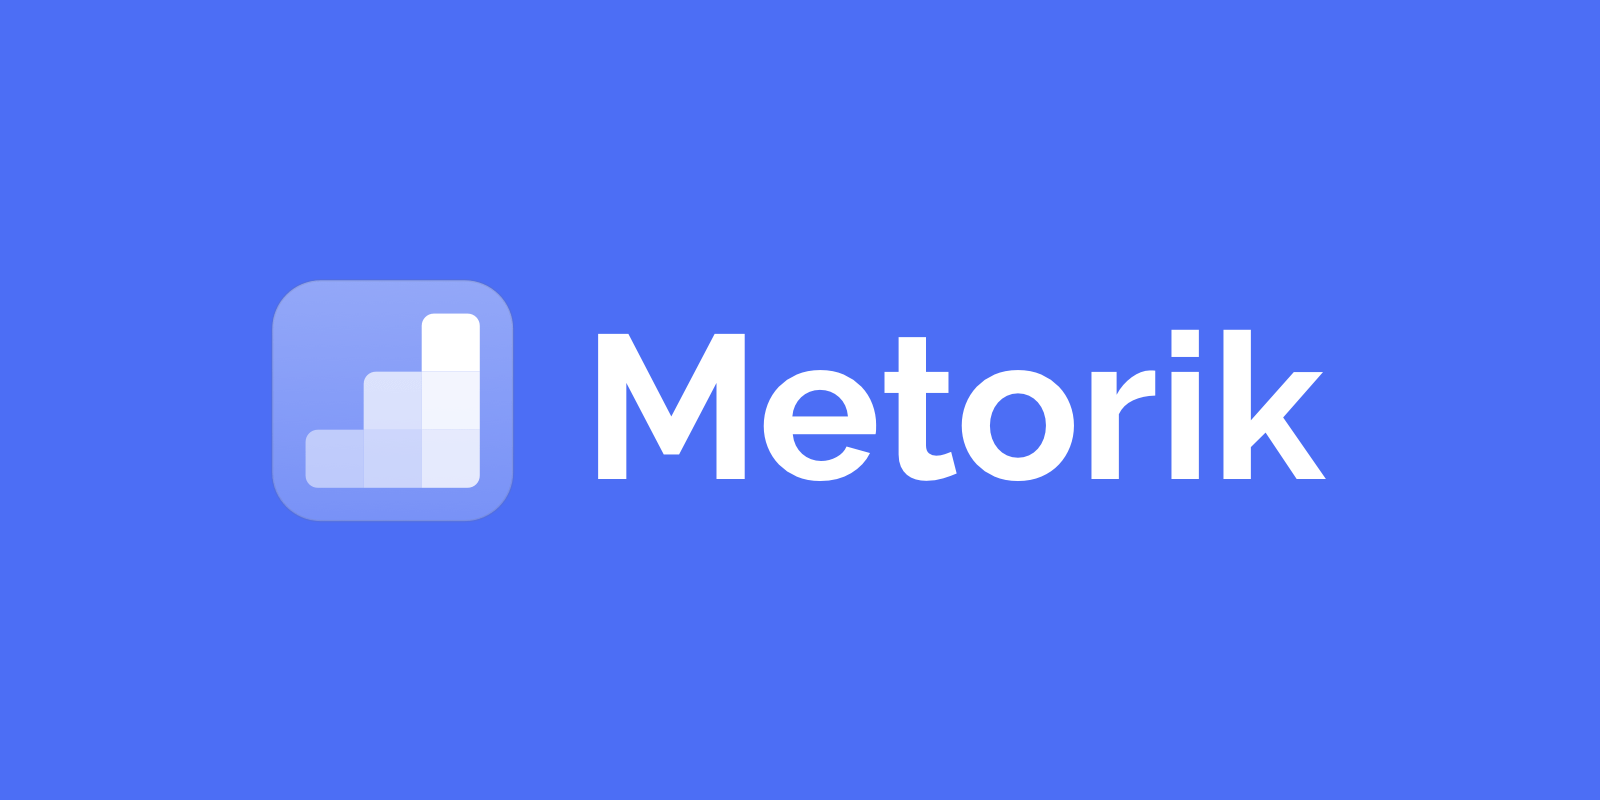 A New Logo for Metorik